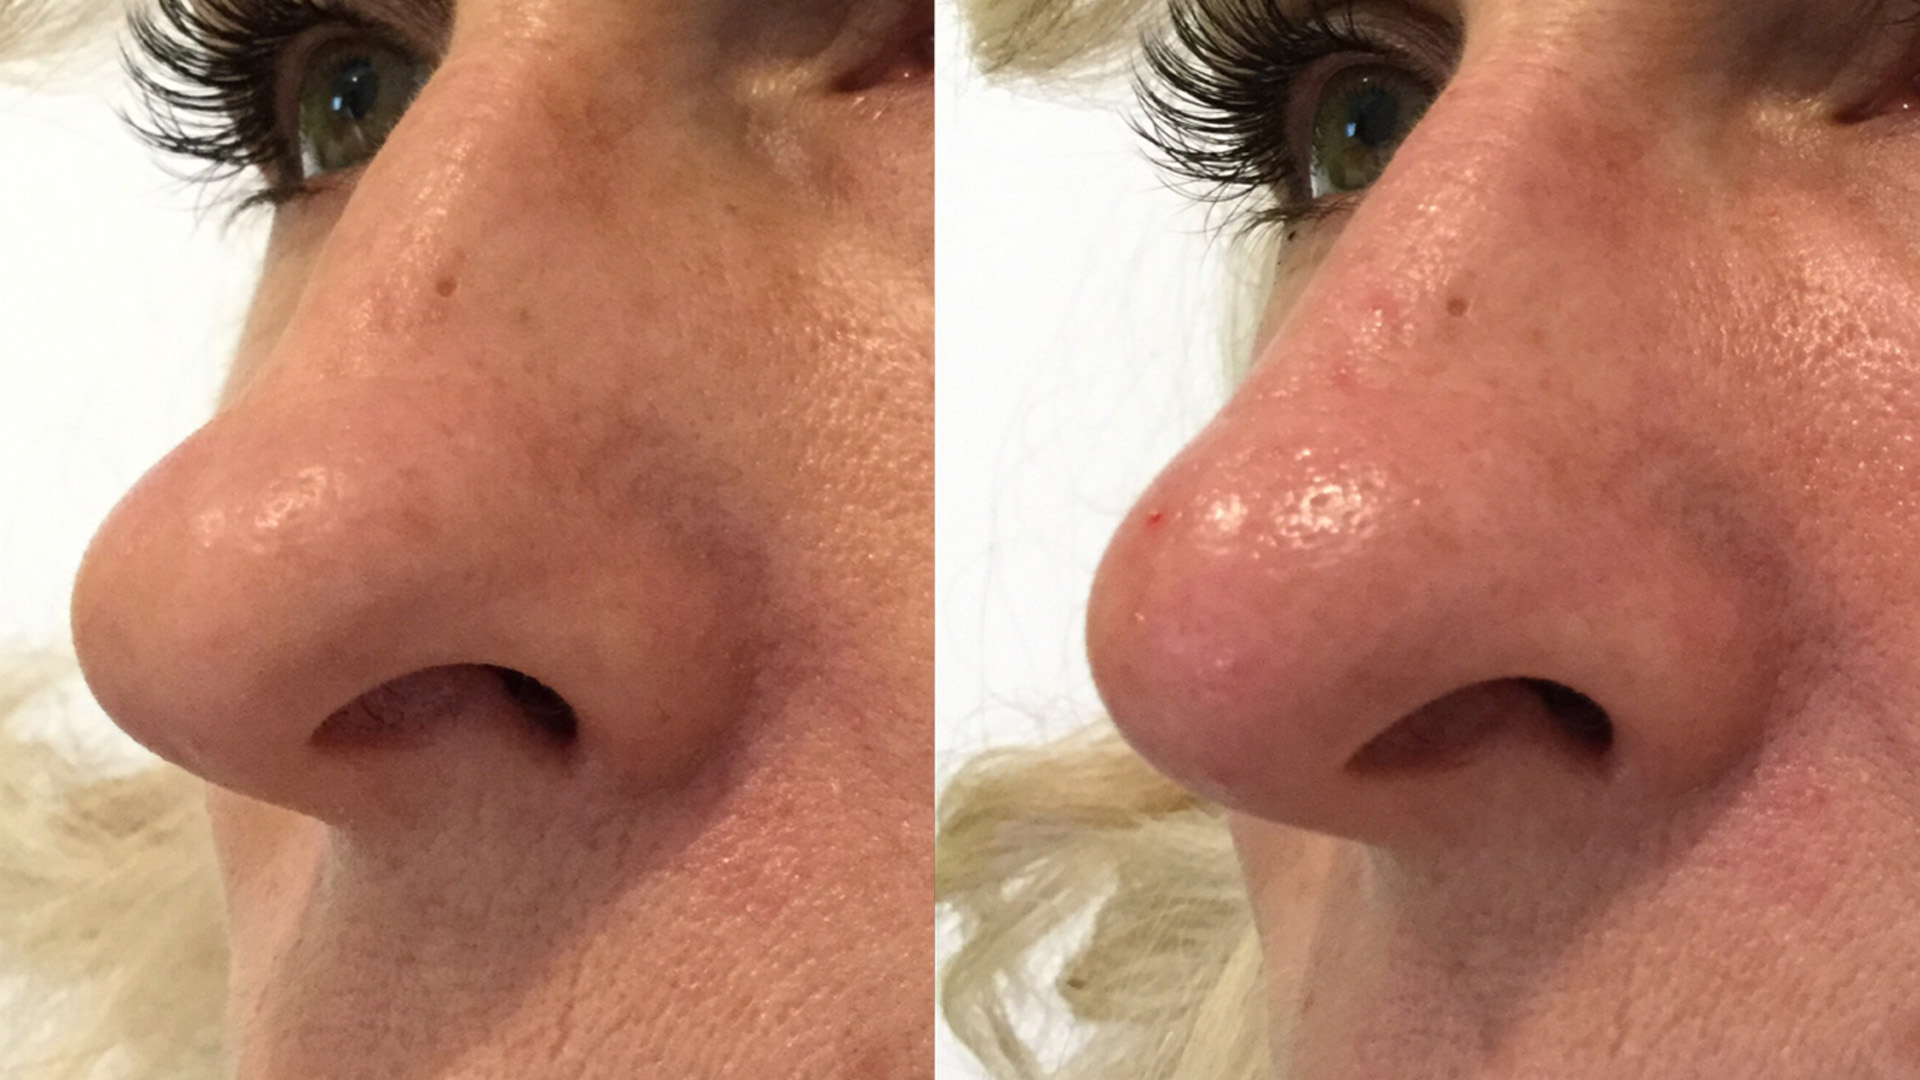 Non Surgical Rhinoplasty, No Downtime And Instant Results Using Bellafill At Well Medical Arts. Learn More About The Non Surgical Nose Job At Non Surgical Rhinoplasty